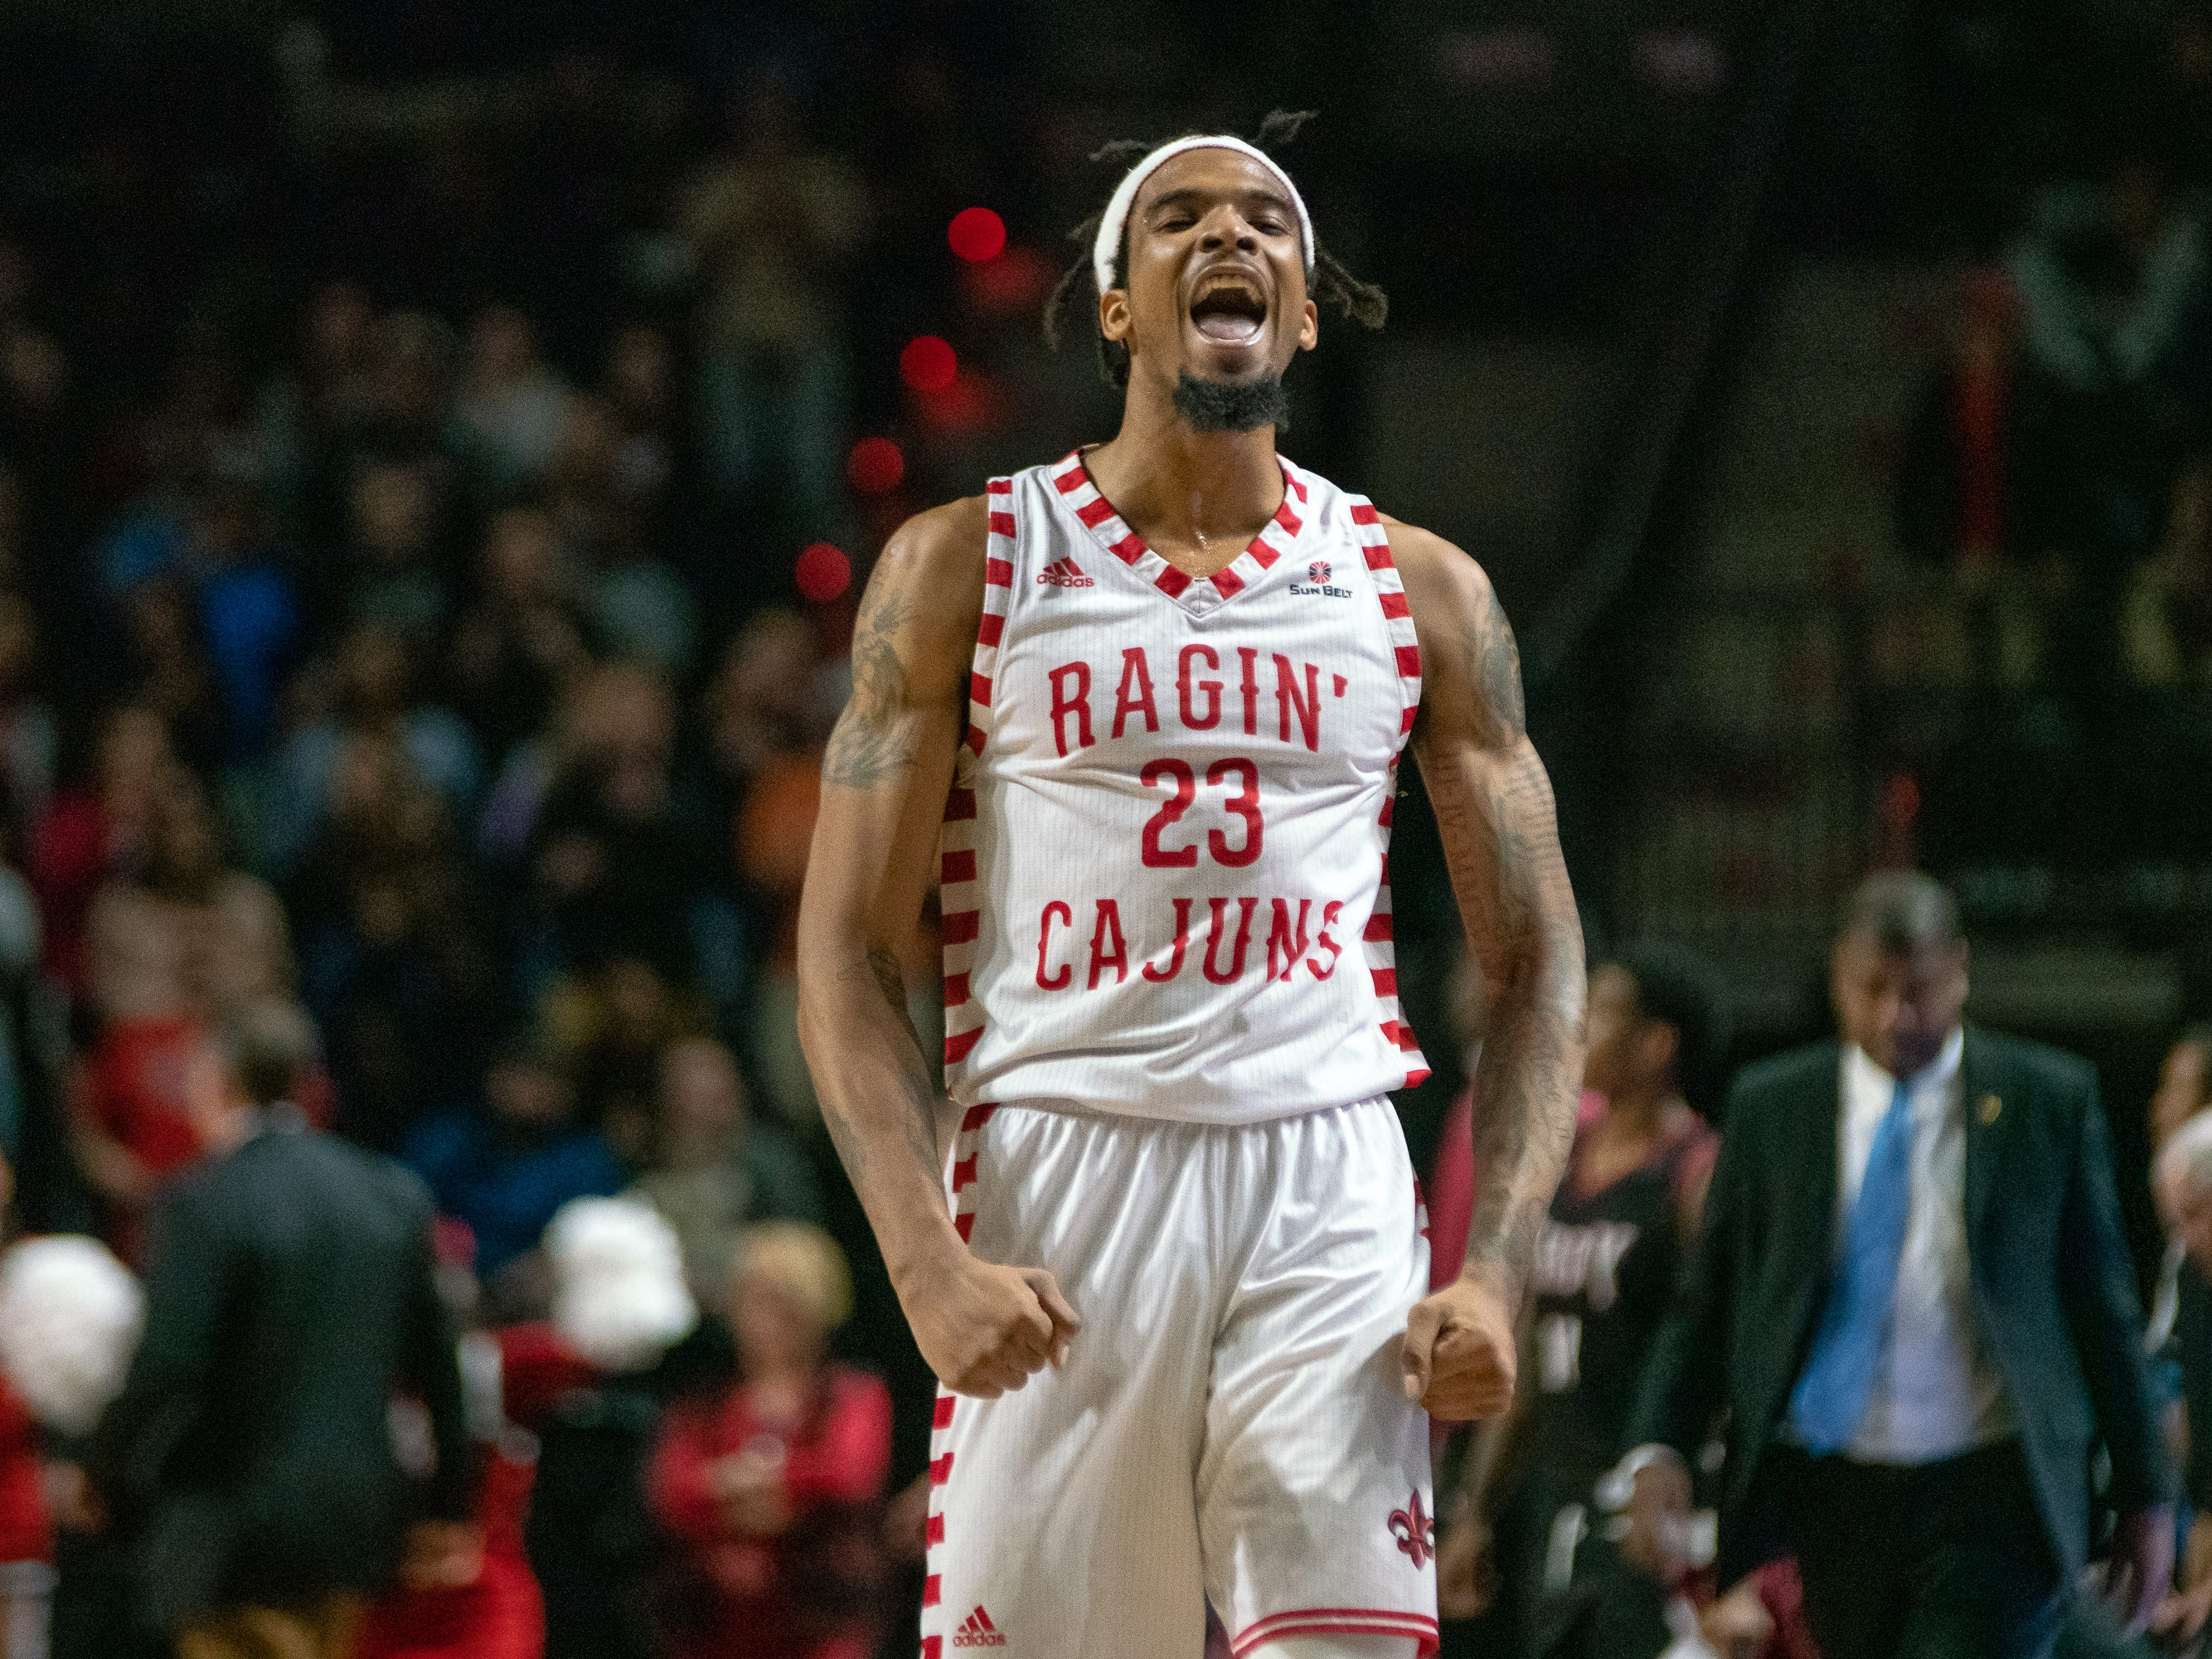 UL's Jakeenan Gant celebrates the win after the game as the Ragin' Cajuns take on the Troy Trojans at the Cajundome on Jan. 26, 2019.